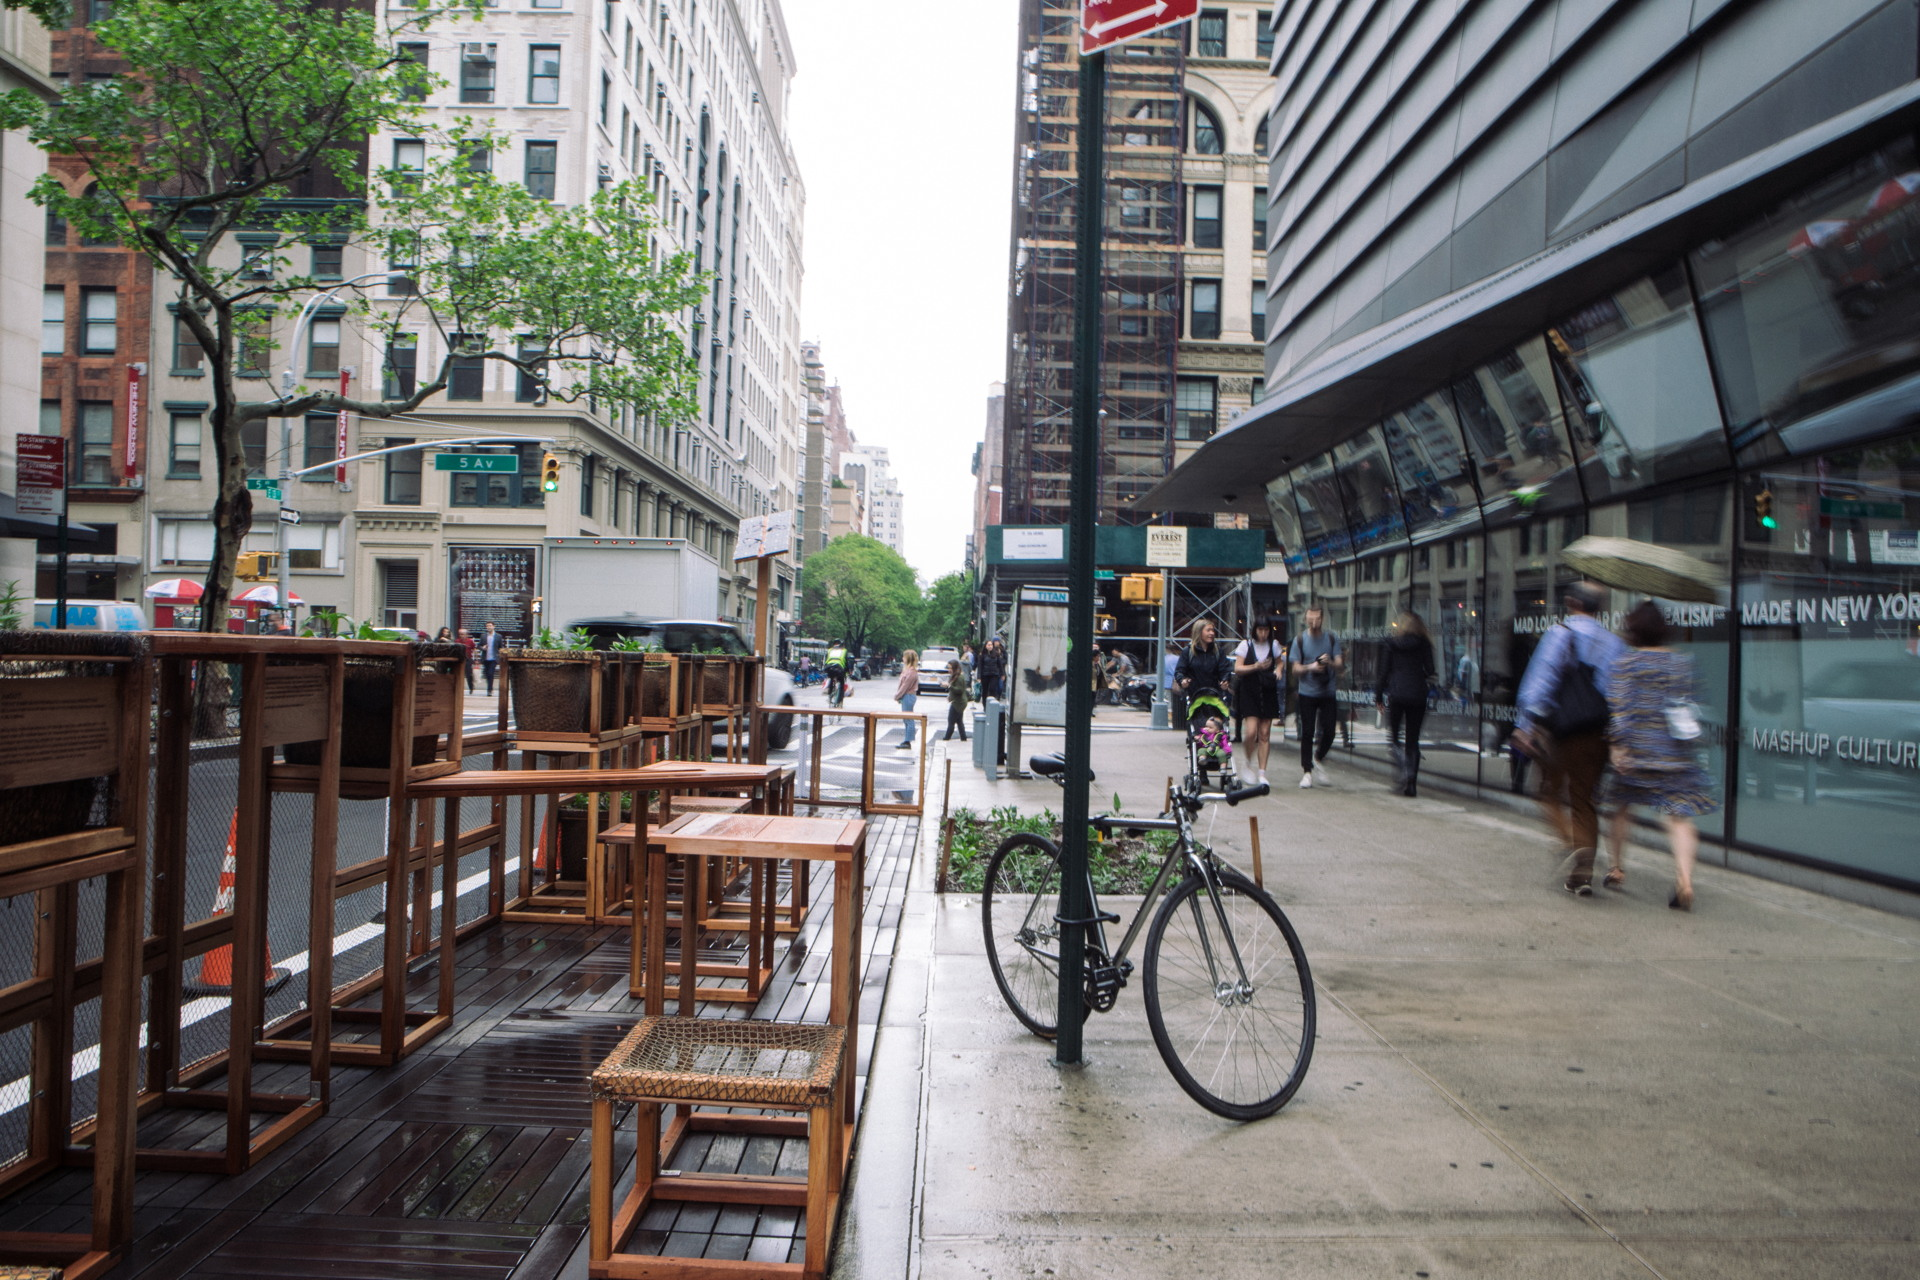 Street Seats sustainable popup space in New York | Livegreenblog